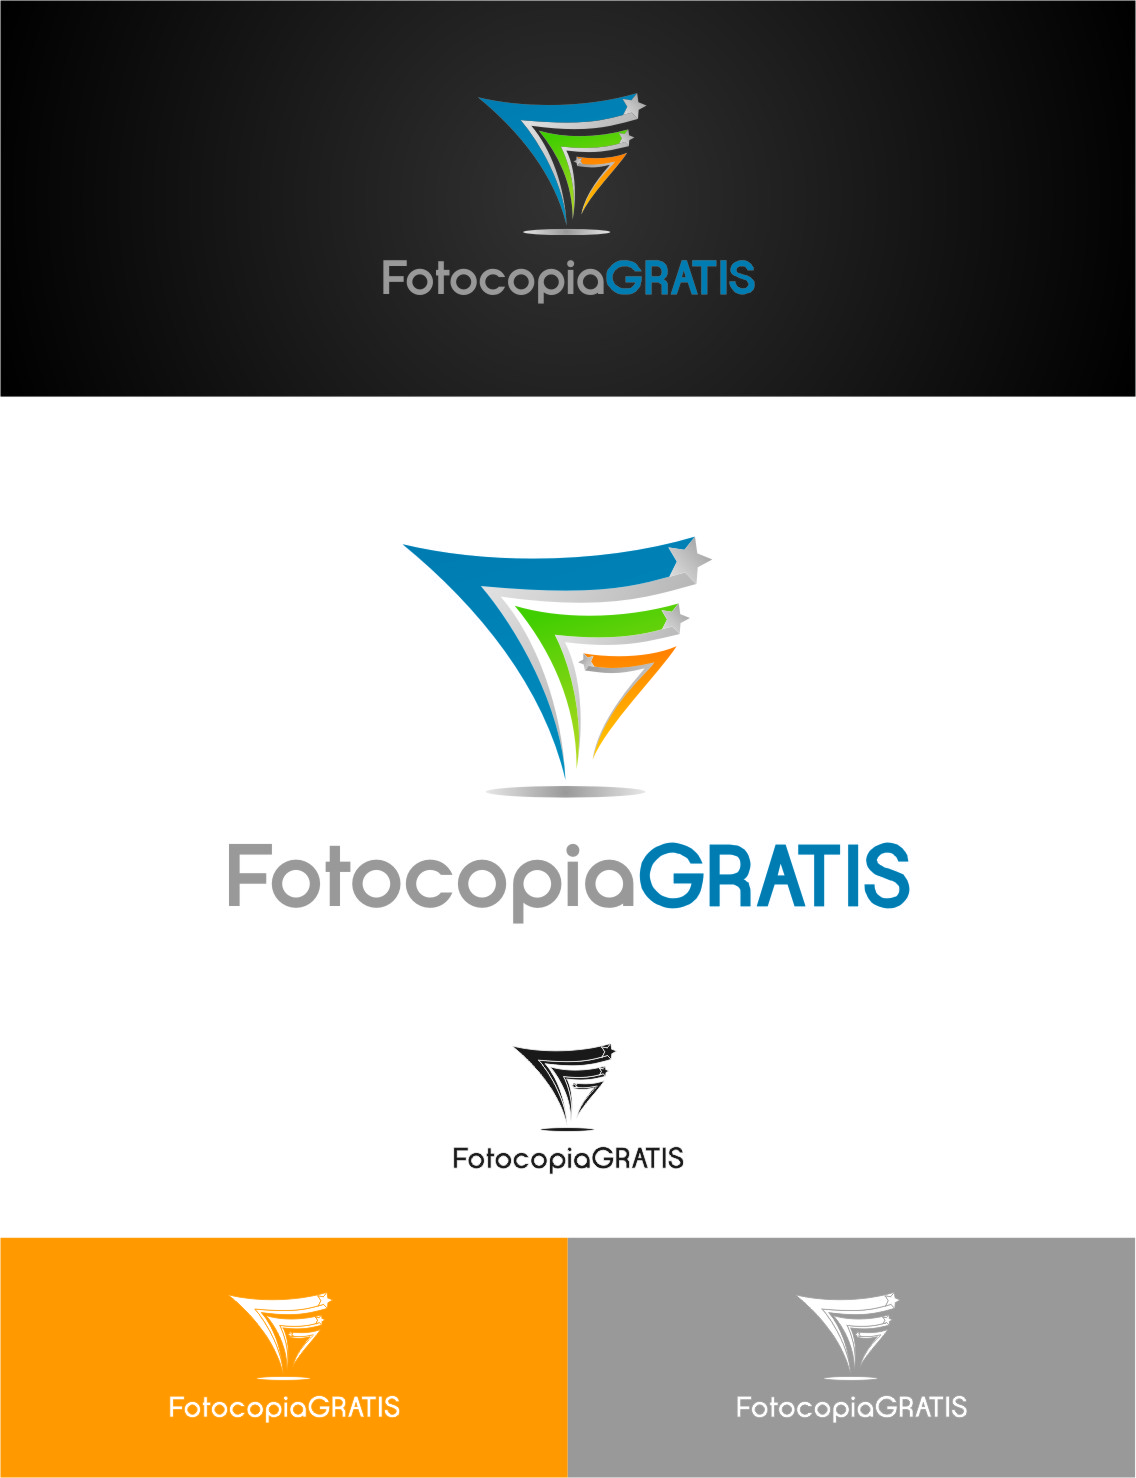 Logo Design by Ngepet_art - Entry No. 259 in the Logo Design Contest Inspiring Logo Design for Fotocopiagratis.